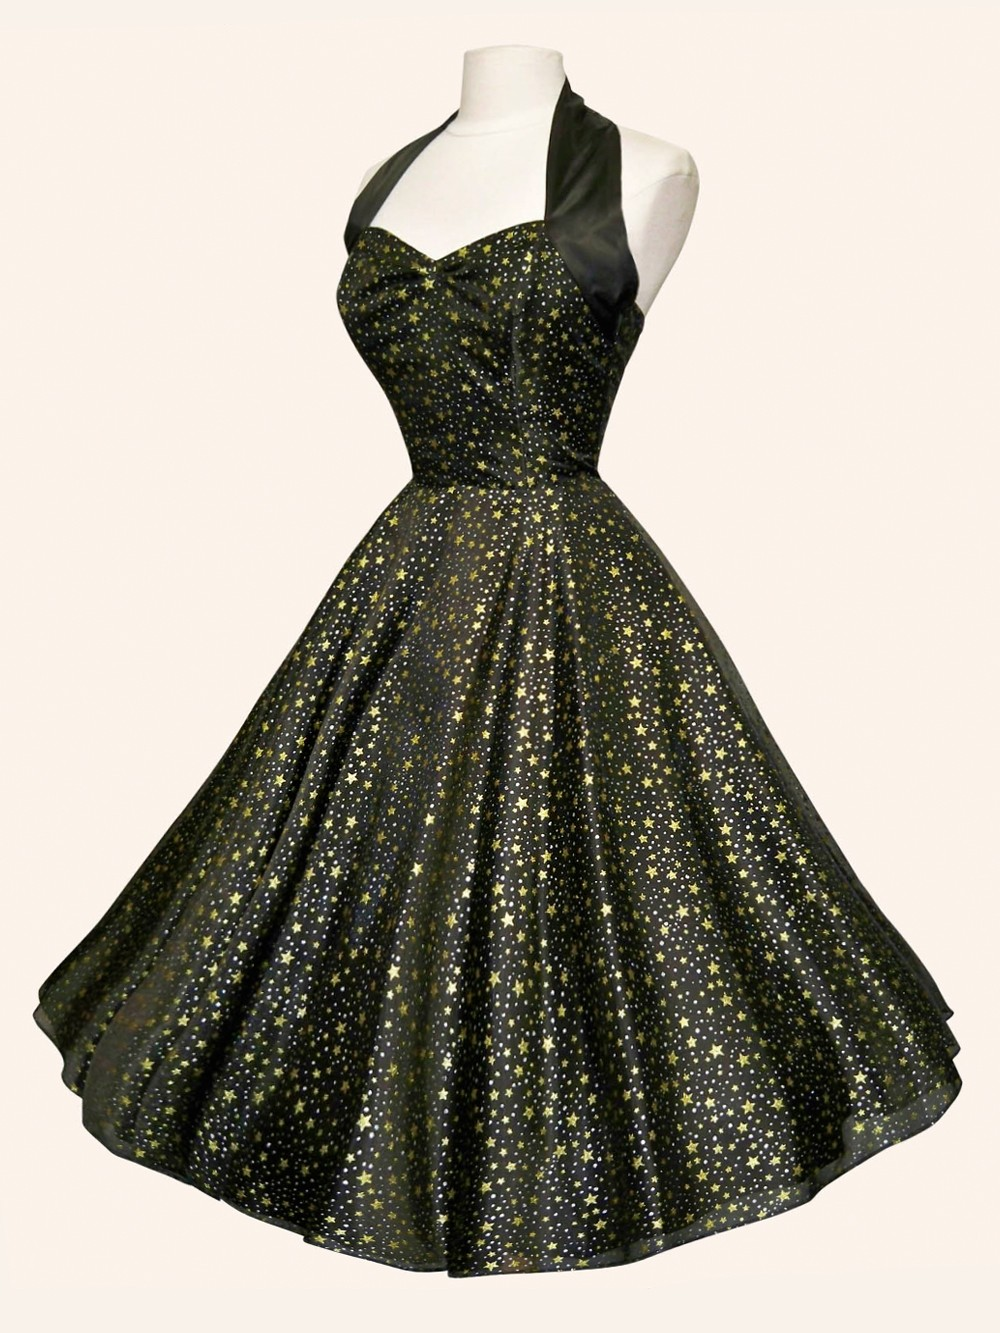 View all dresses view all last chance view all black dresses